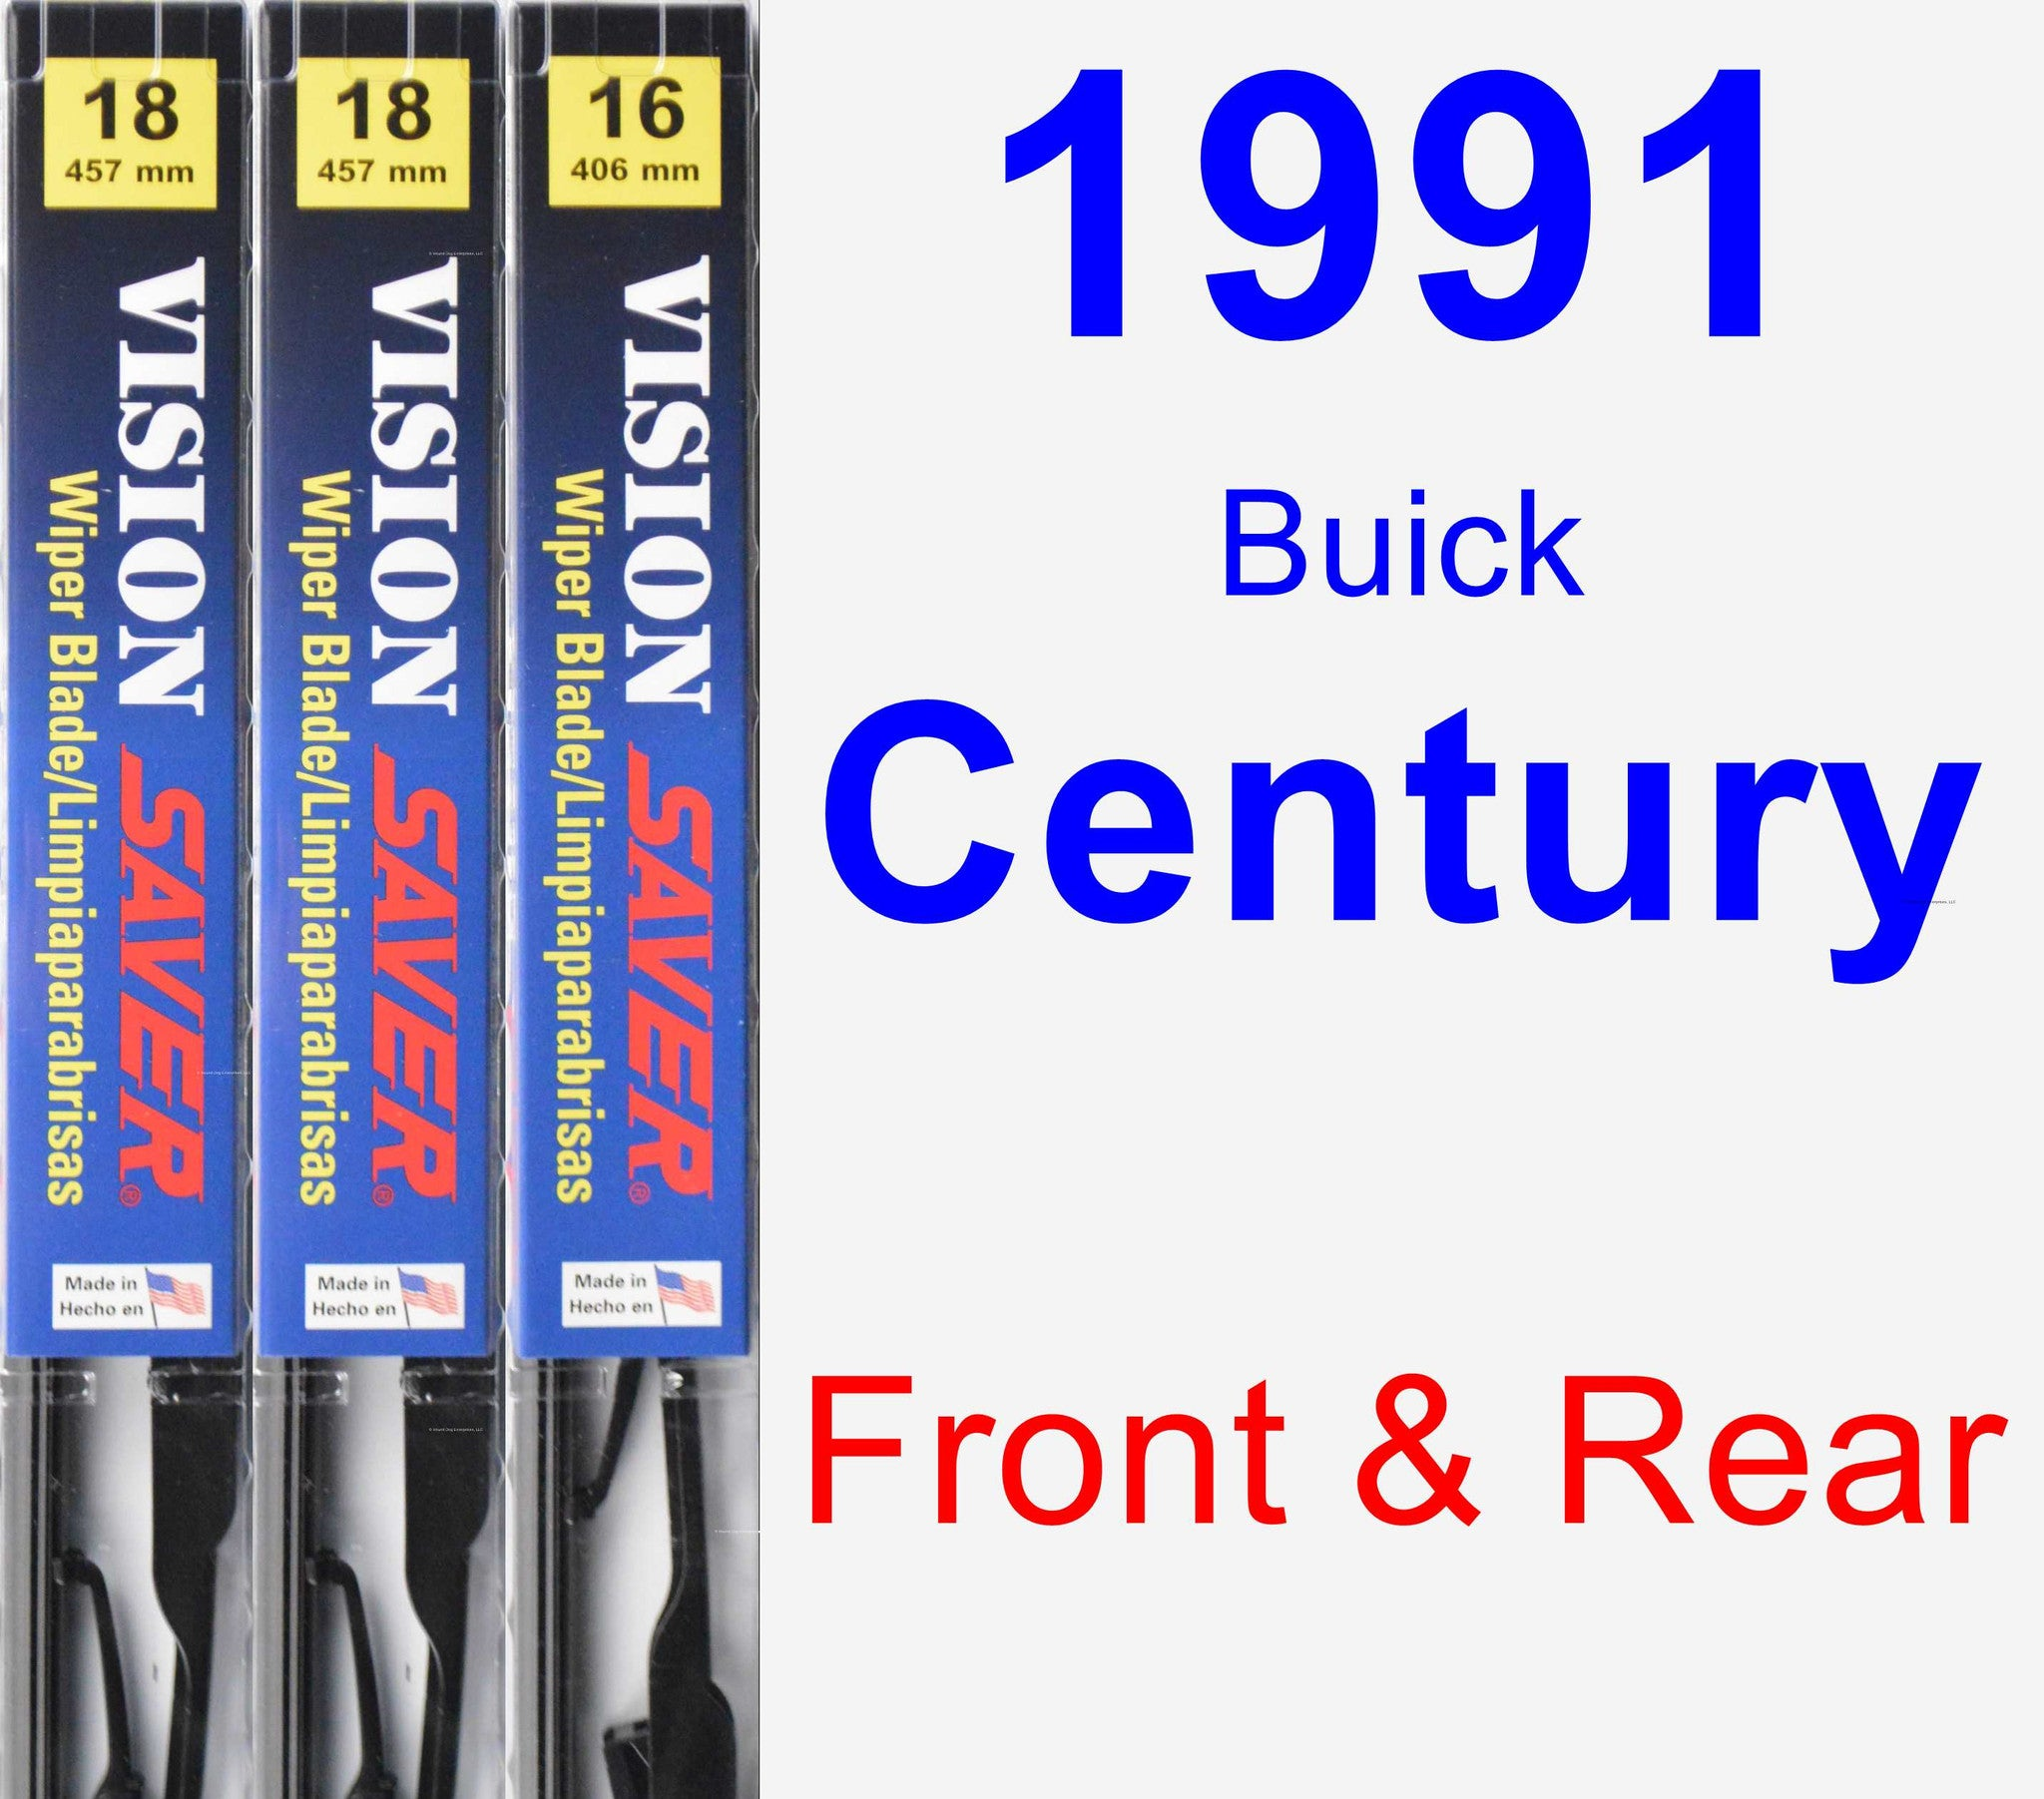 Front & Rear Wiper Blade Pack for 1991 Buick Century - Vision Saver